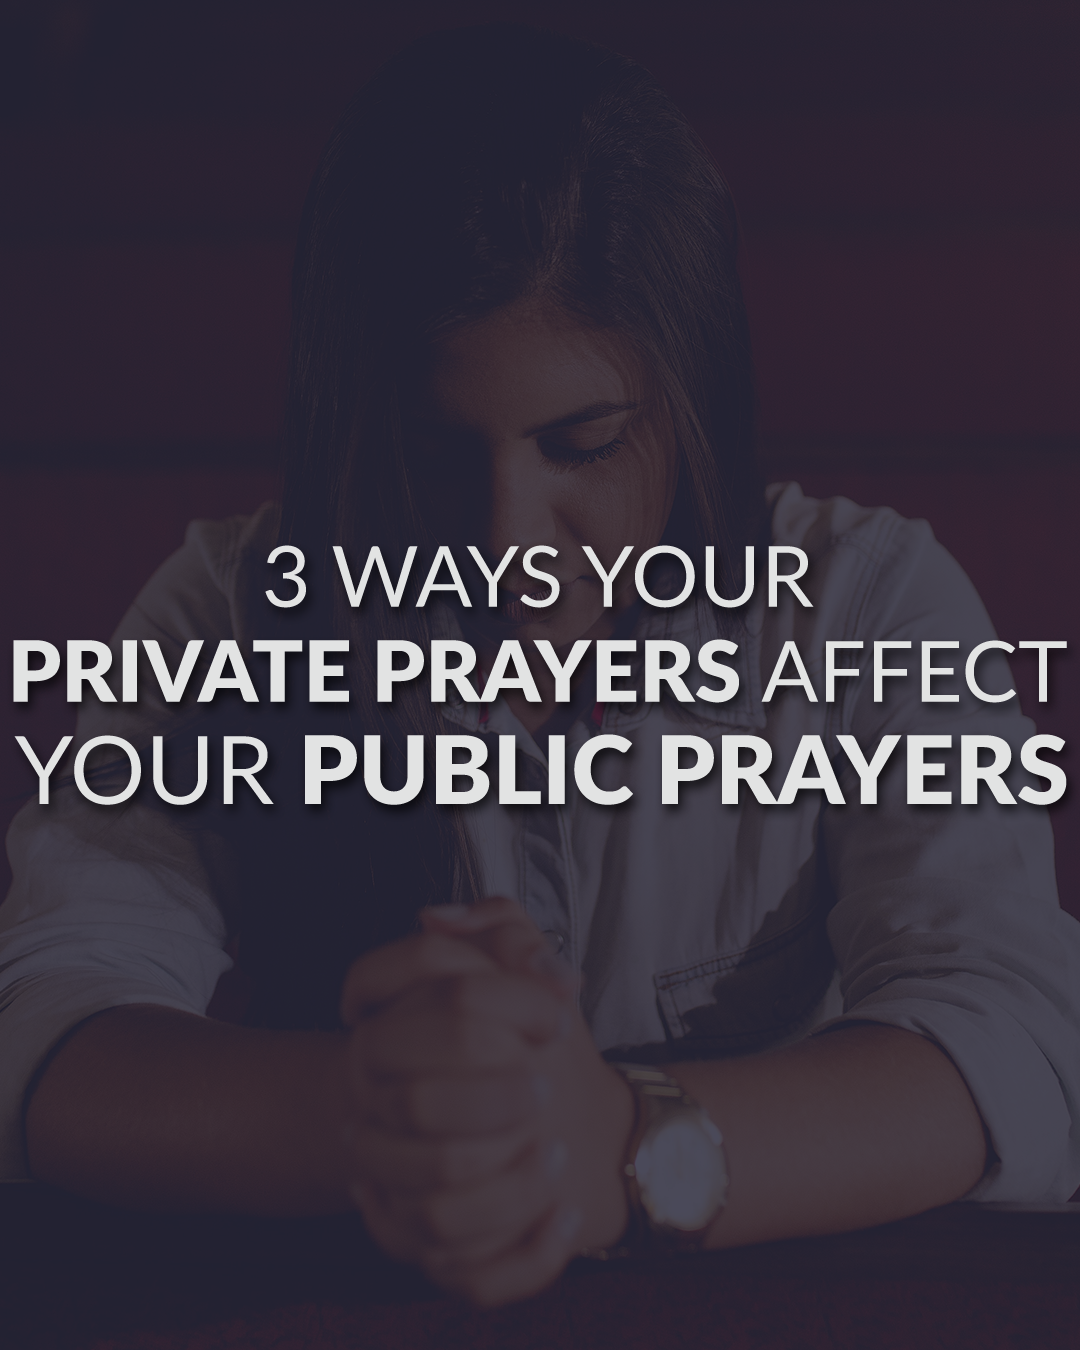 3 Ways Your Private Prayers Affect Your Public Prayers